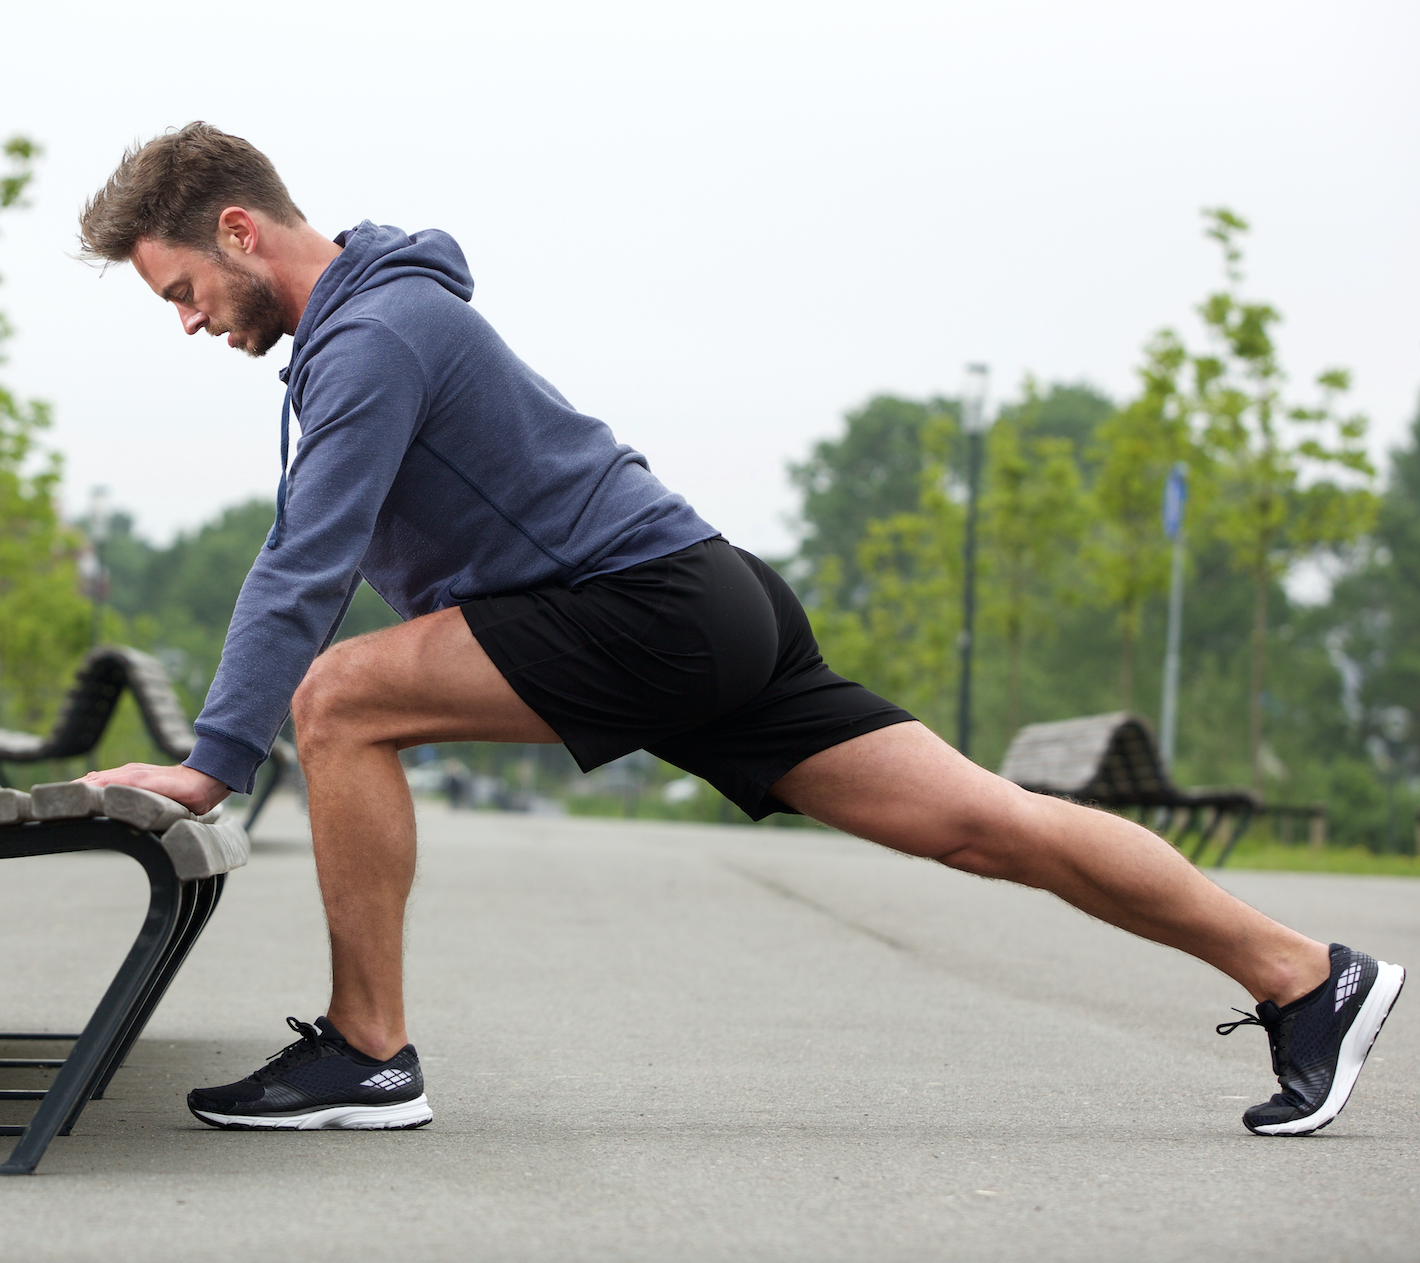 Man stretching on park bench before a run